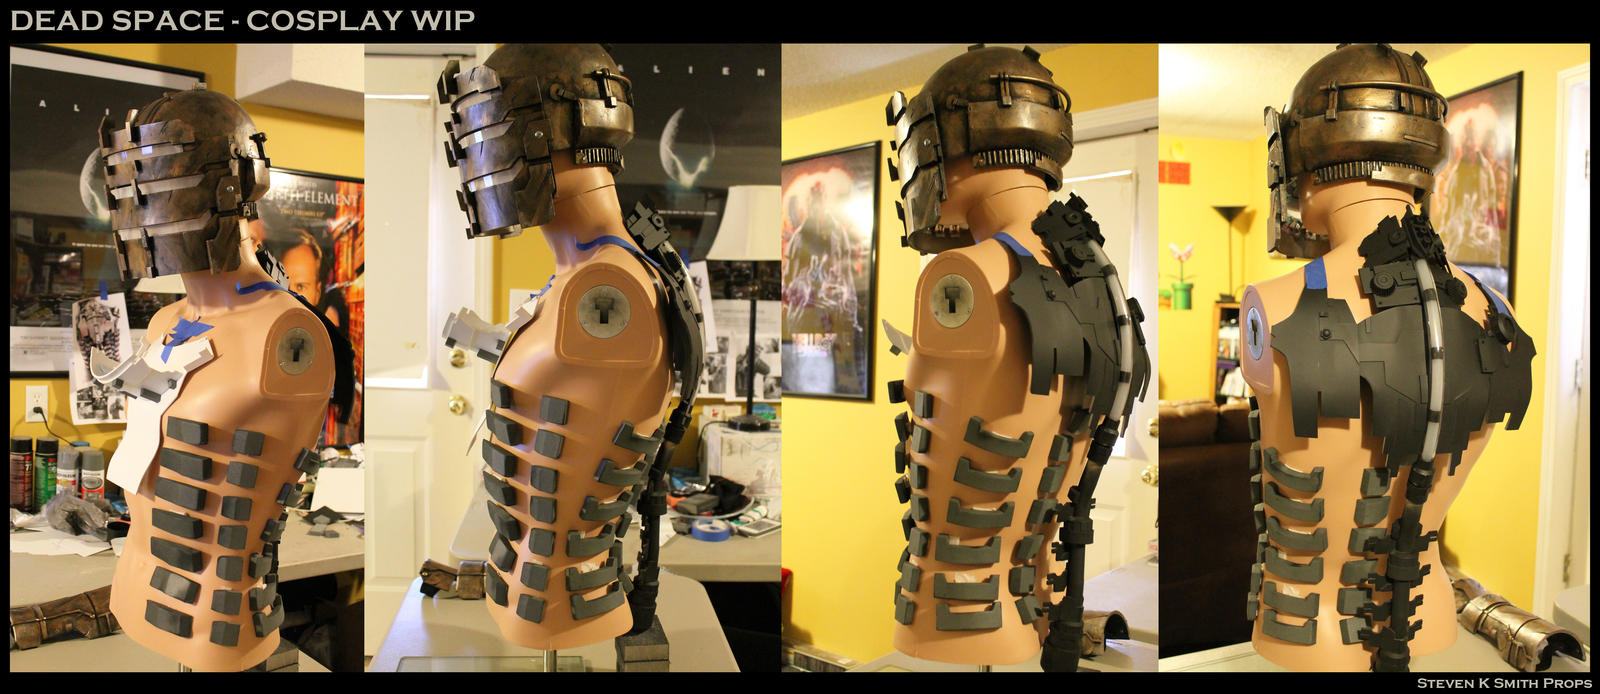 dead space isaac clarke cosplay wip by sksprops on